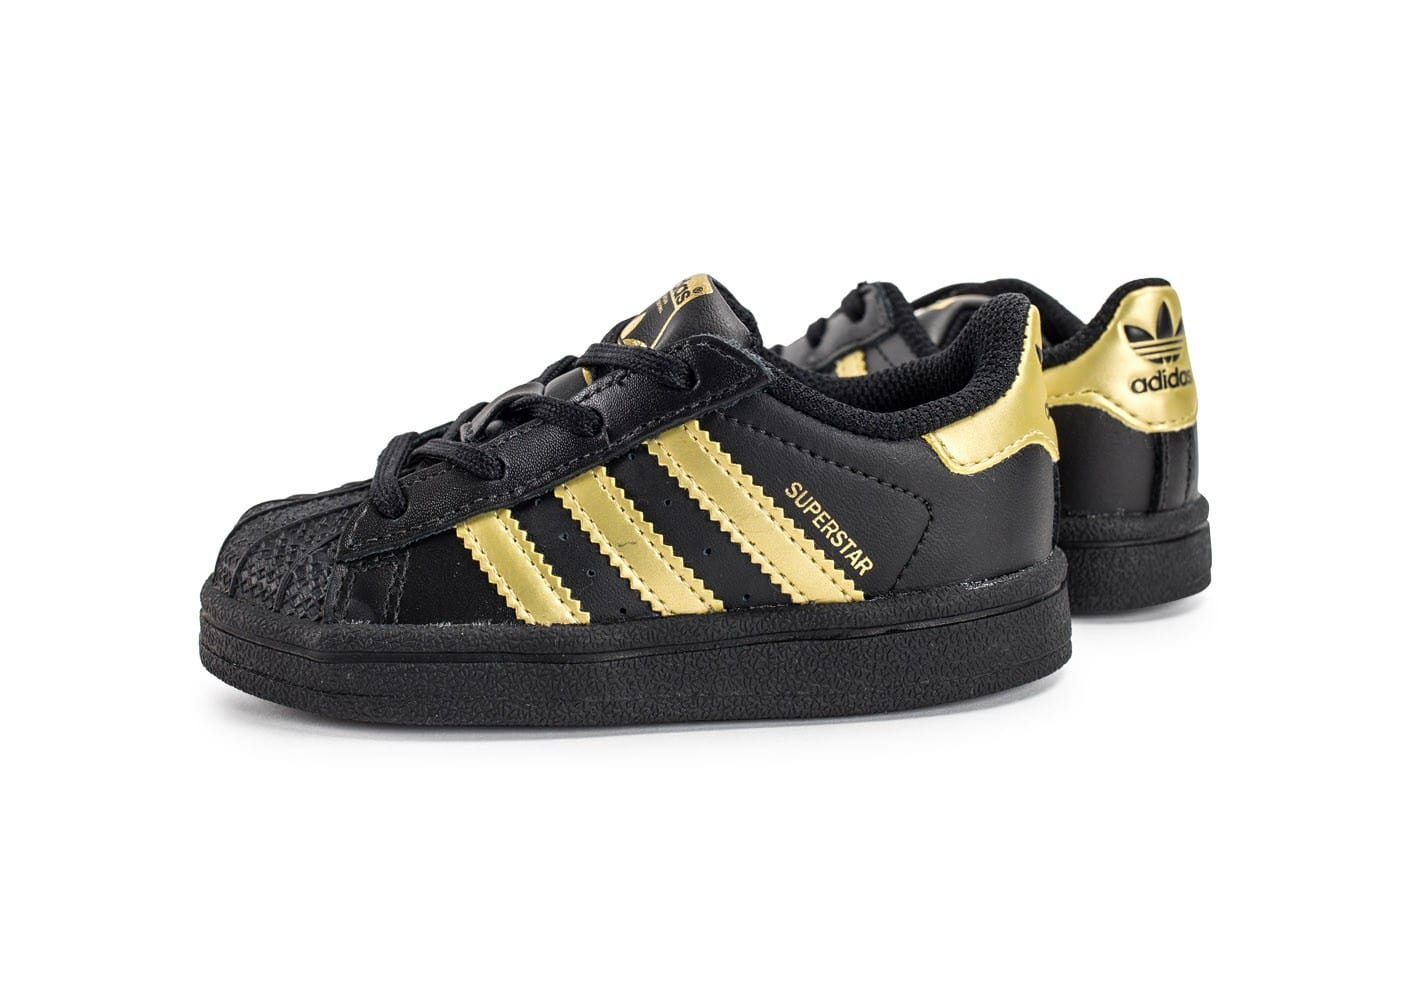 adidas superstar chausport,Vente Adidas Superstar